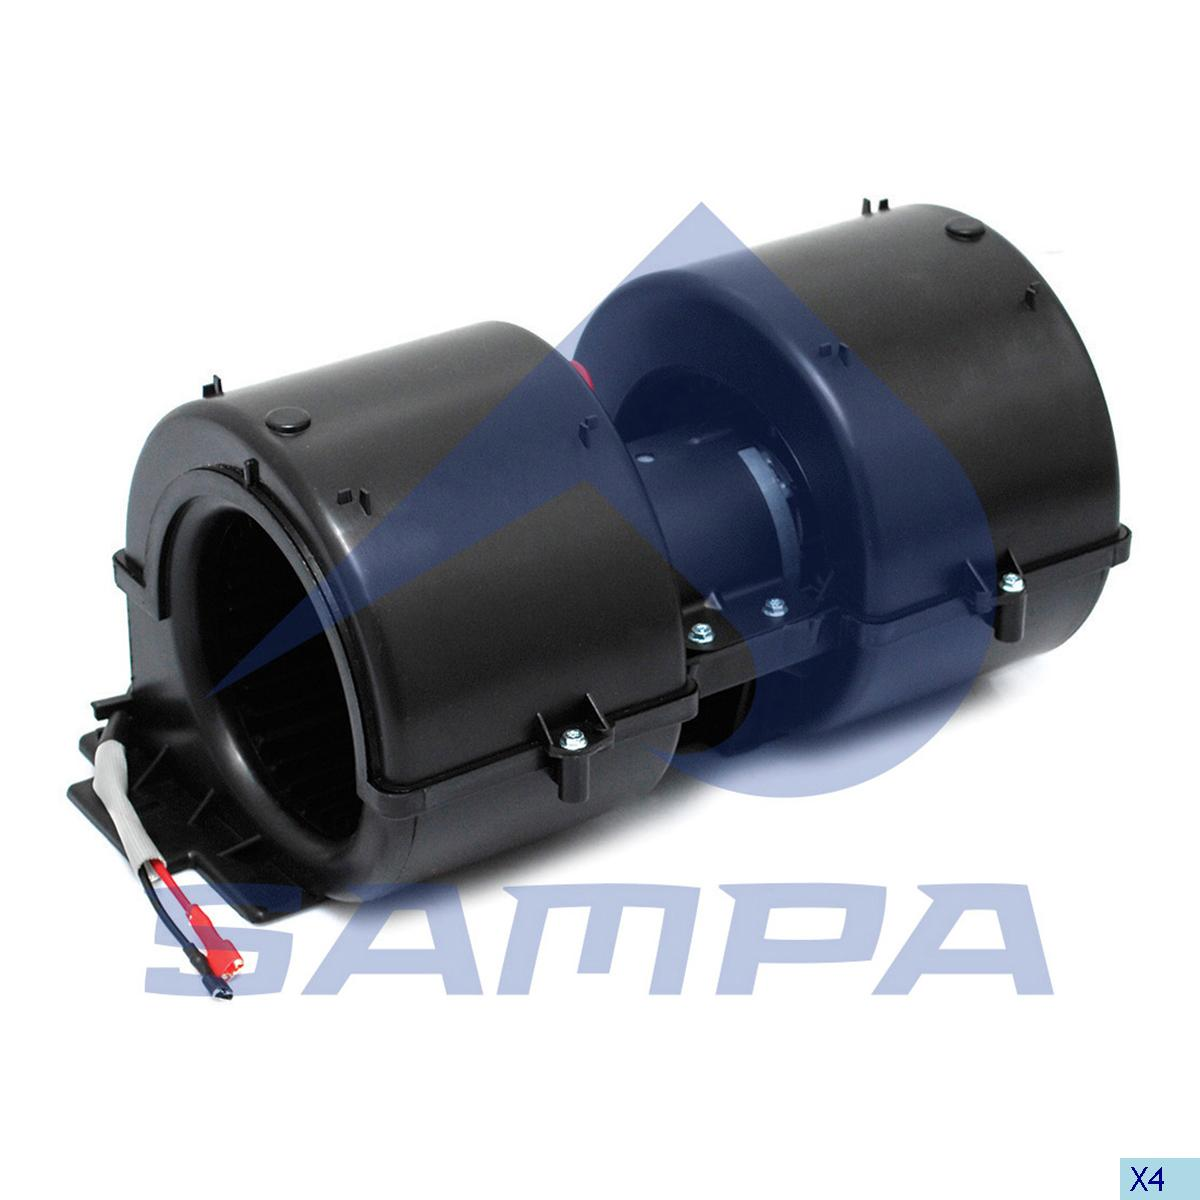 Fan Motor, Cab Heating & Ventilation, Daf, Cab